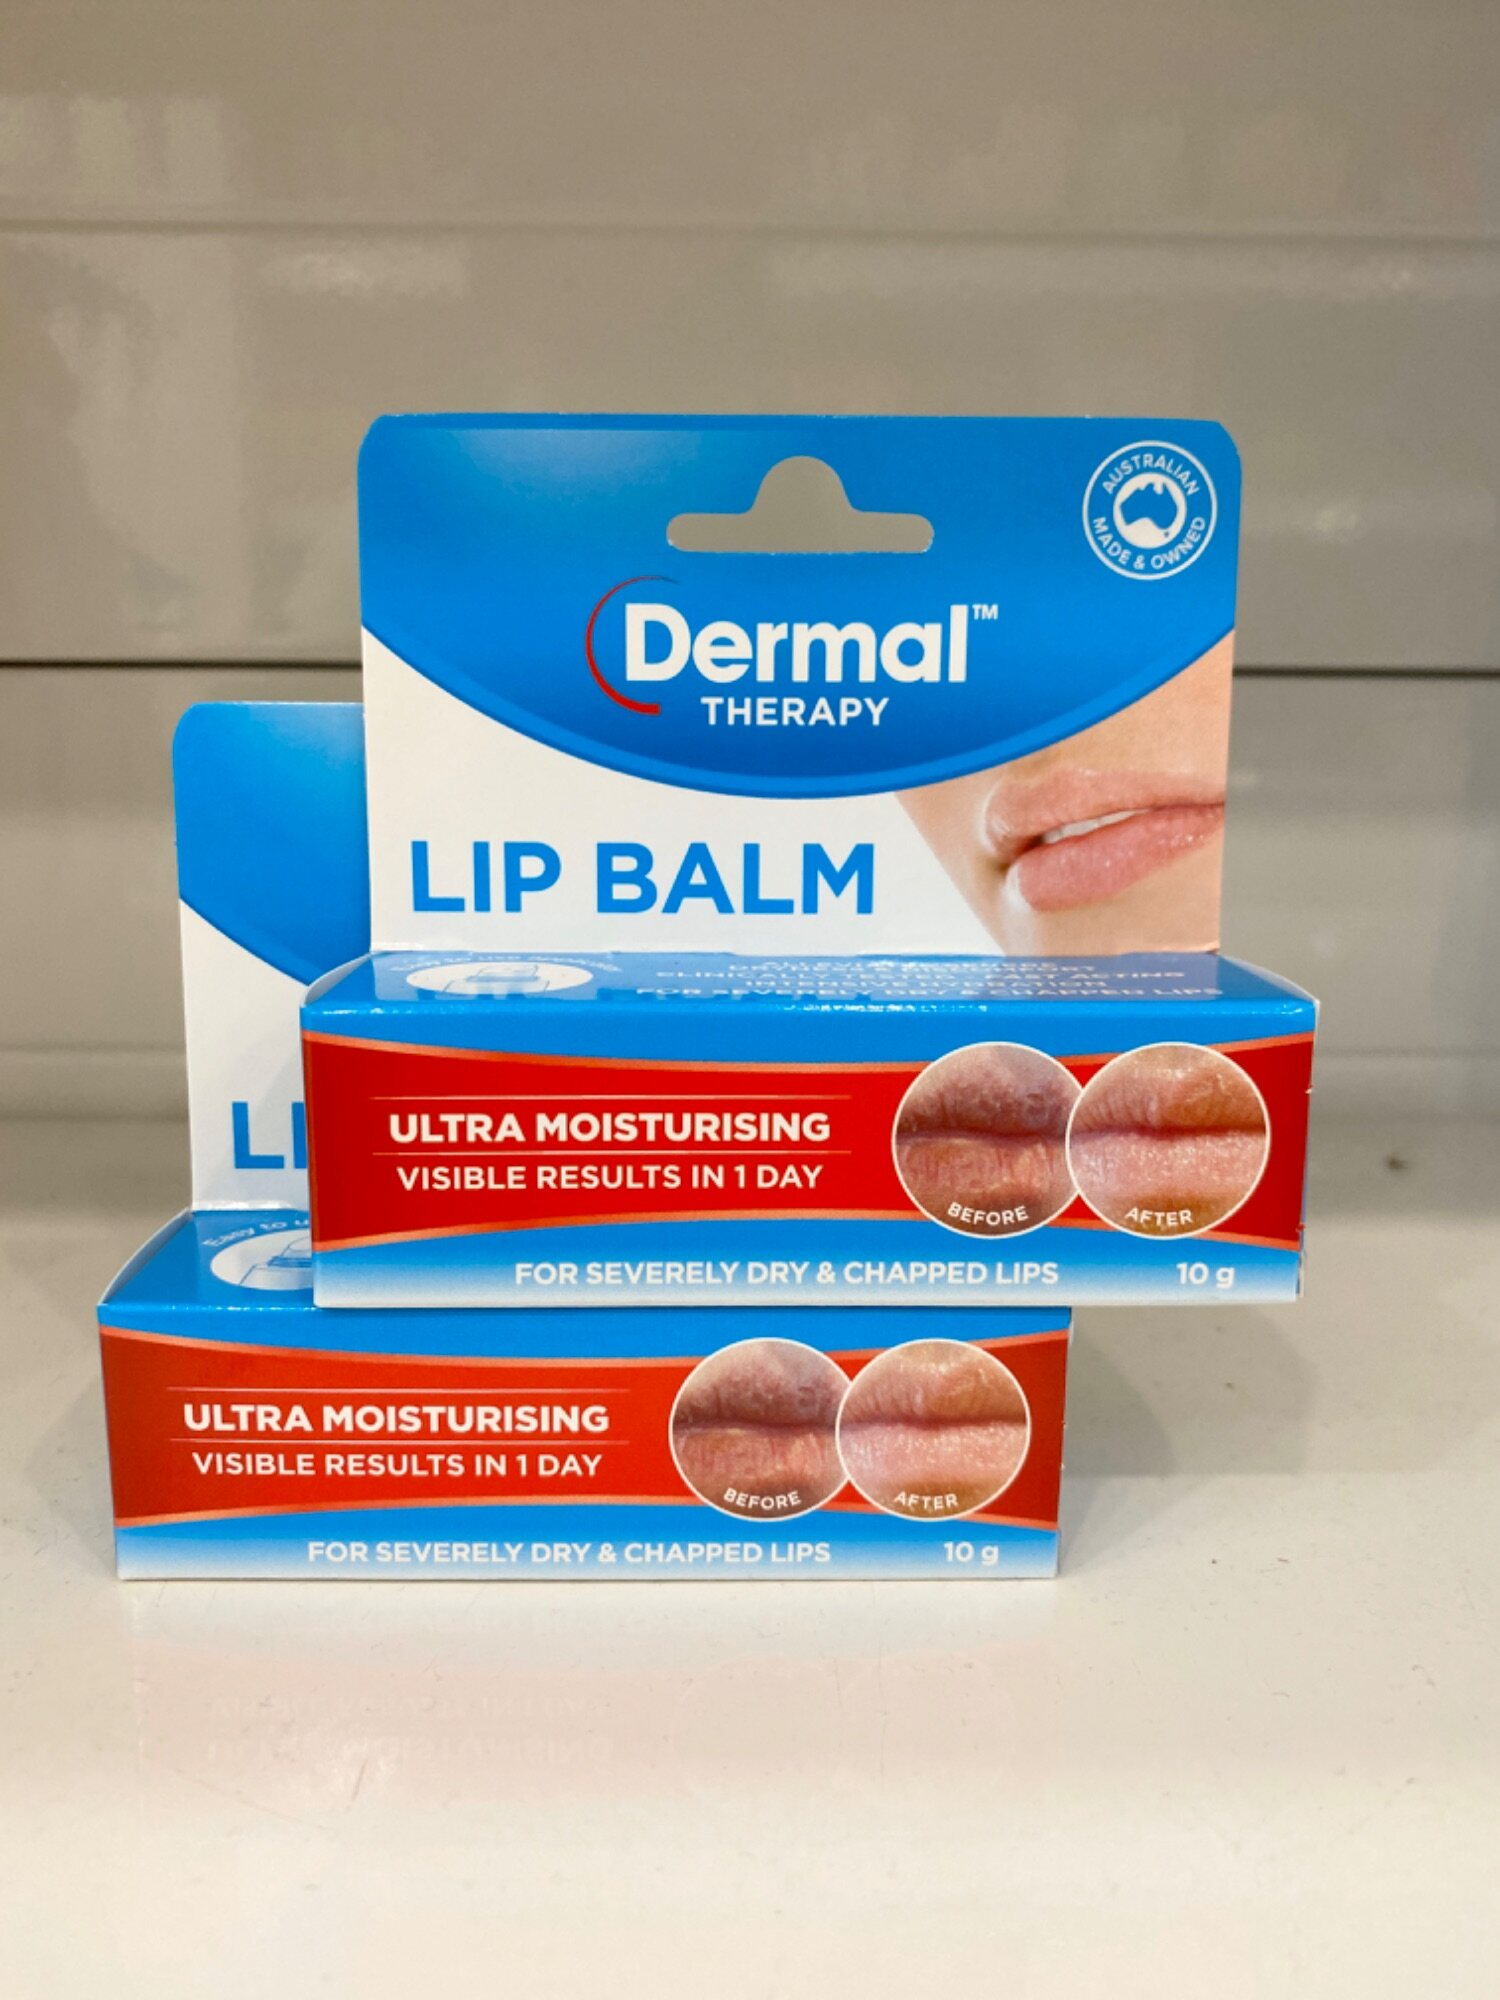 Dermal Therapy Lip Balm 10g x 2 (NEW PACKAGING)